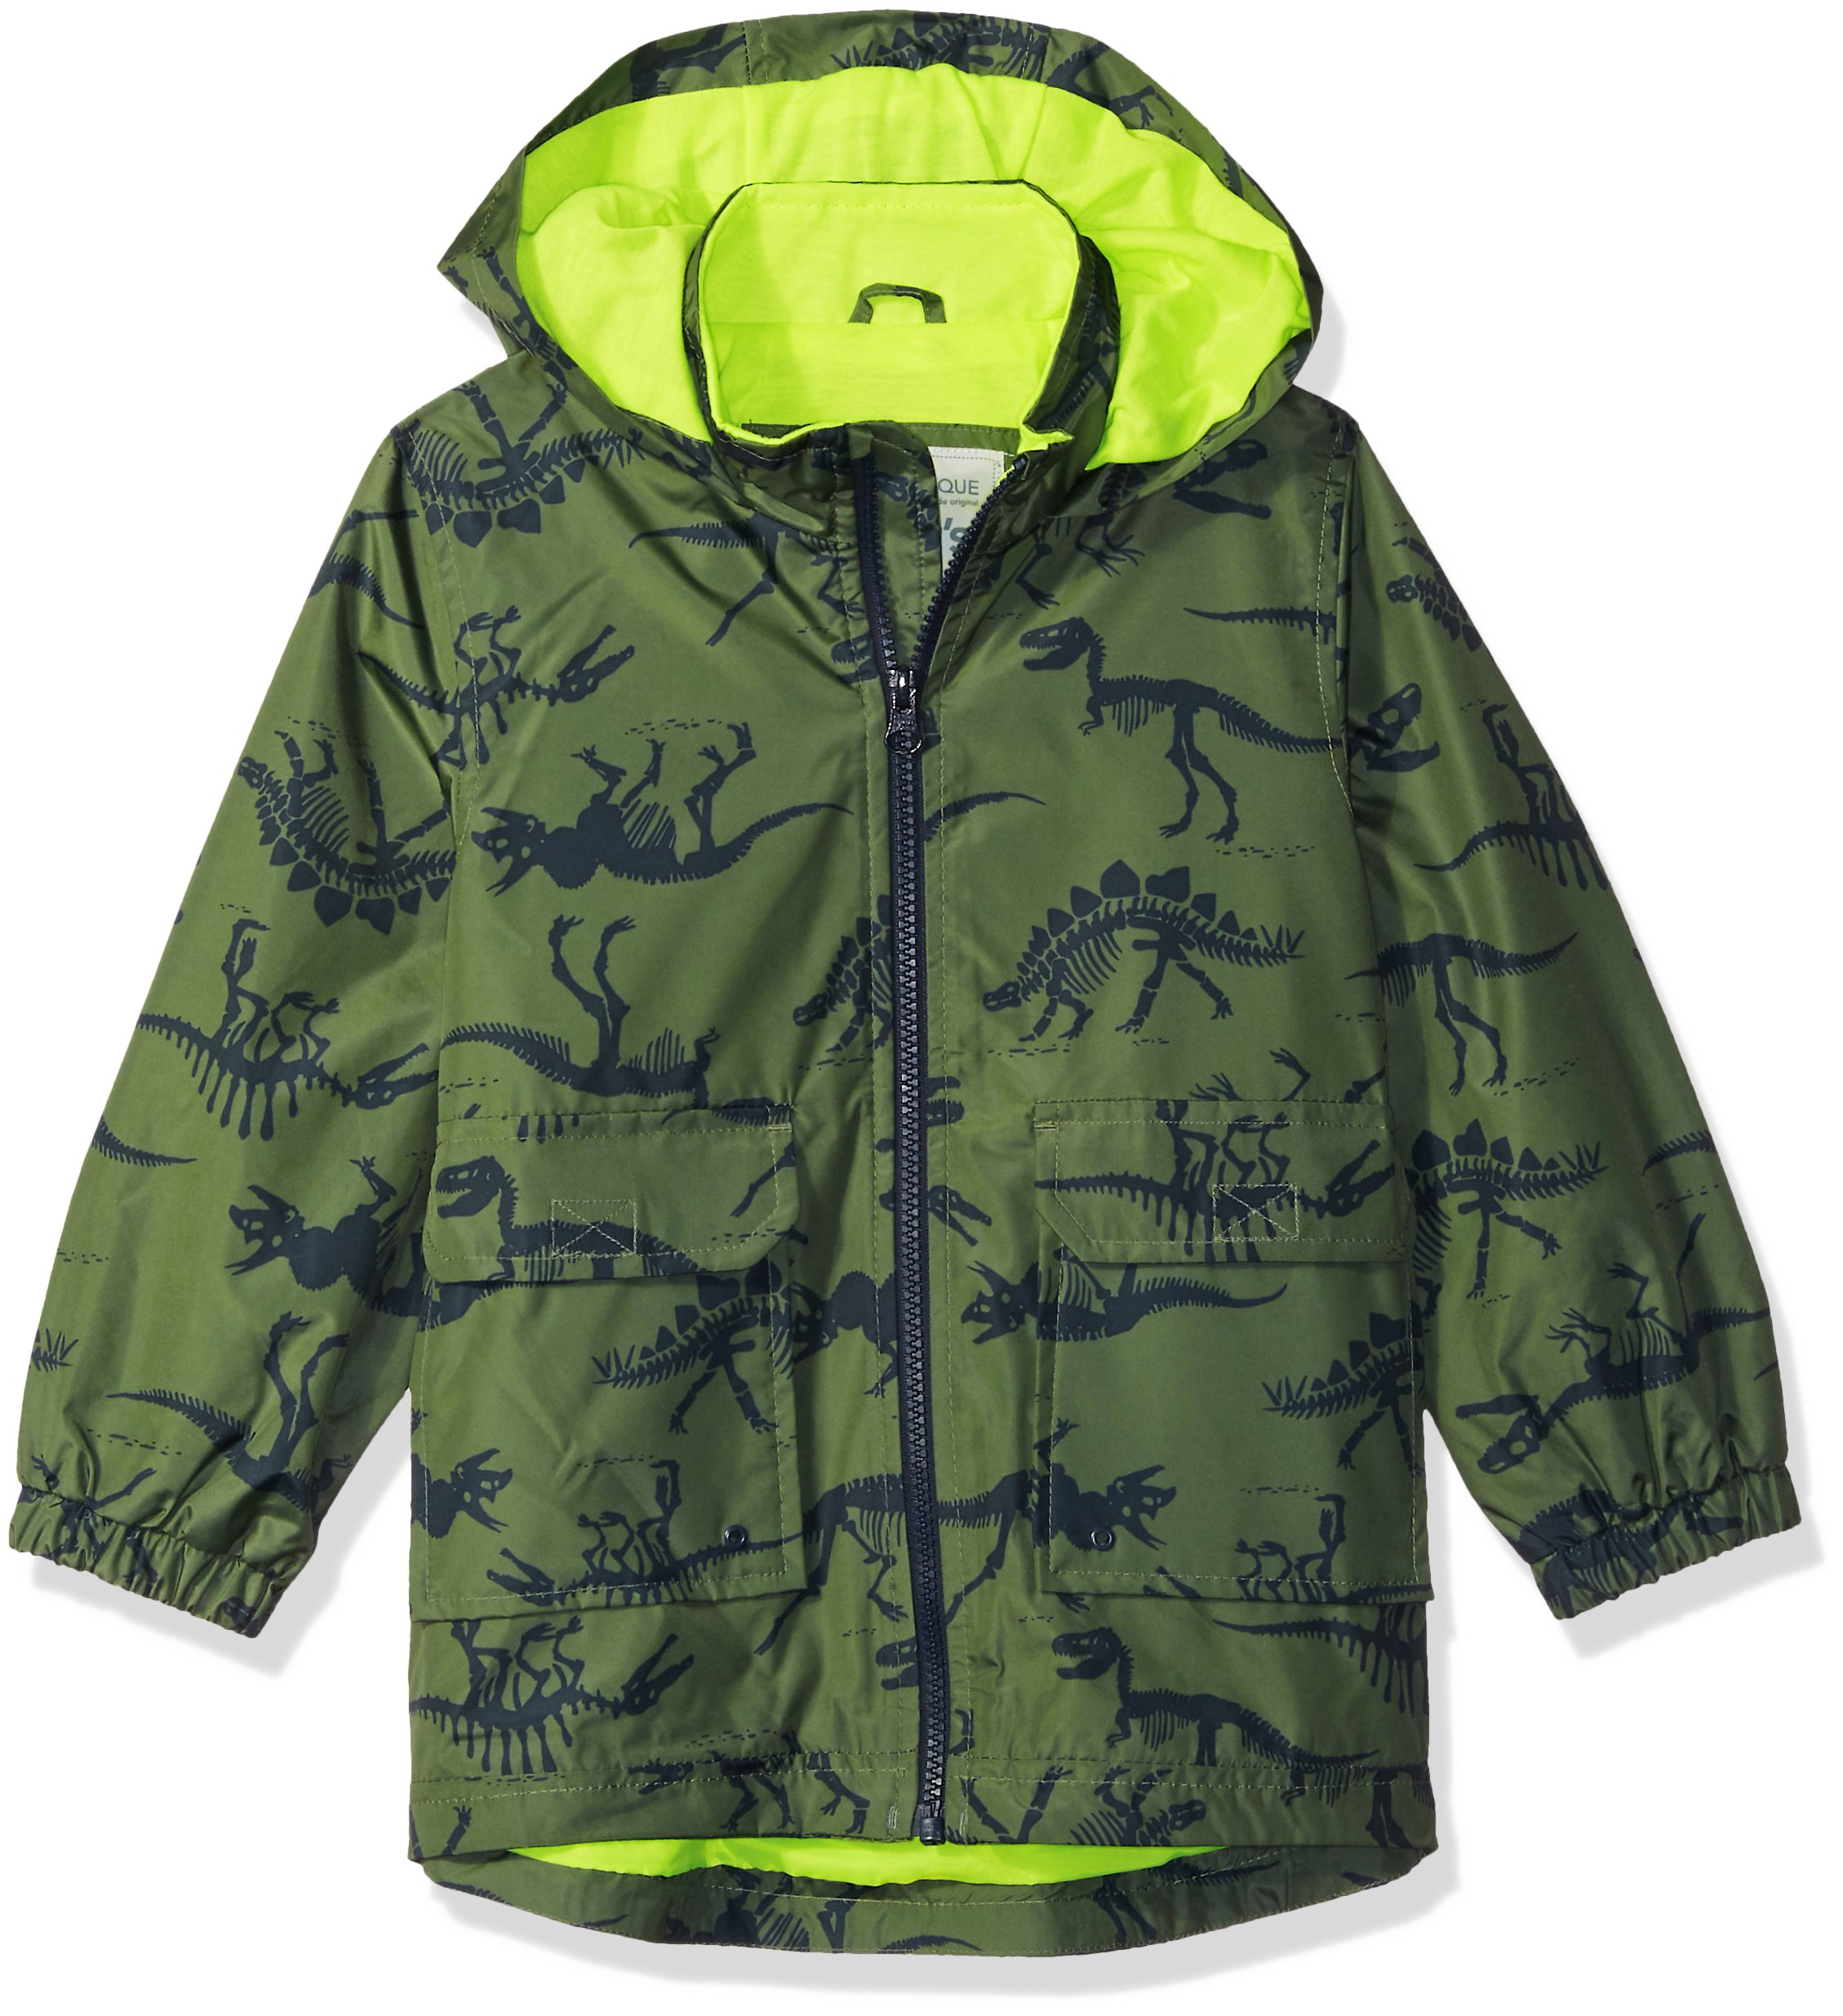 Carter's Little Boys' His Favorite Rainslicker Rain Jacket, Green Dinosaur Print, 5/6 by Carter's